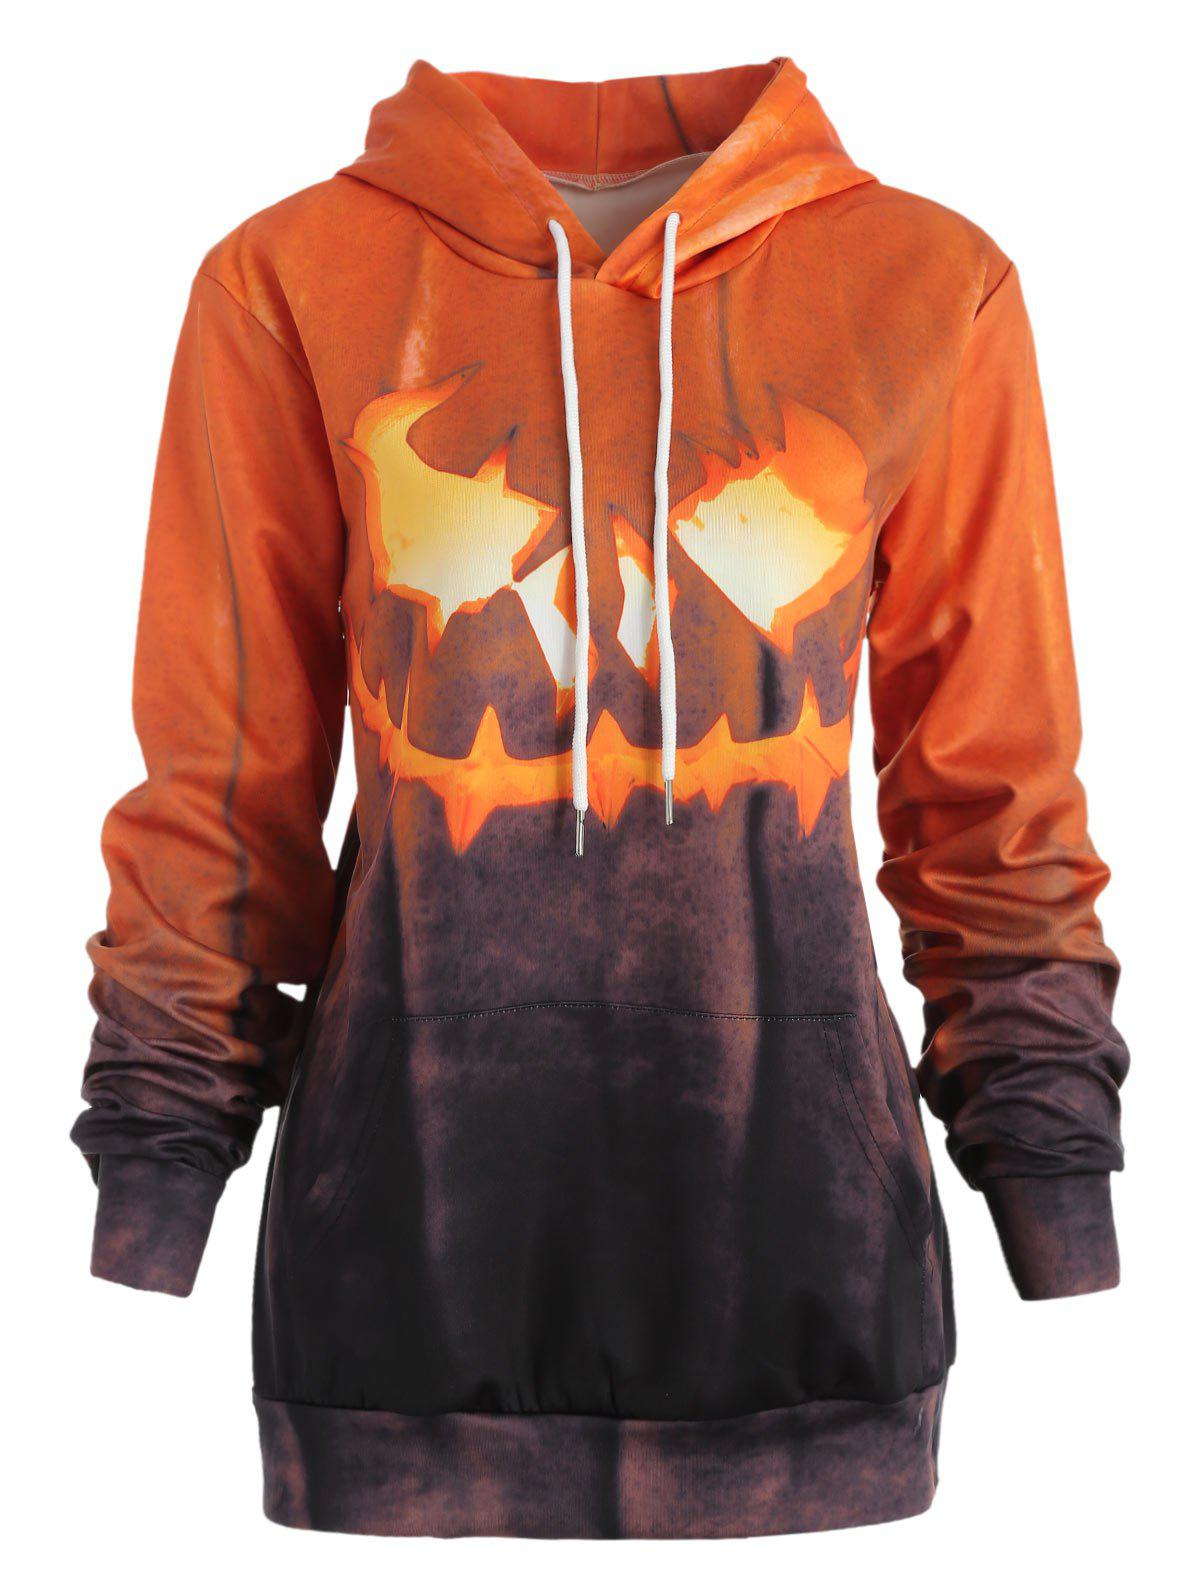 Sweat-shirt Halloween Brillant Citrouille Imprimé à Cordon